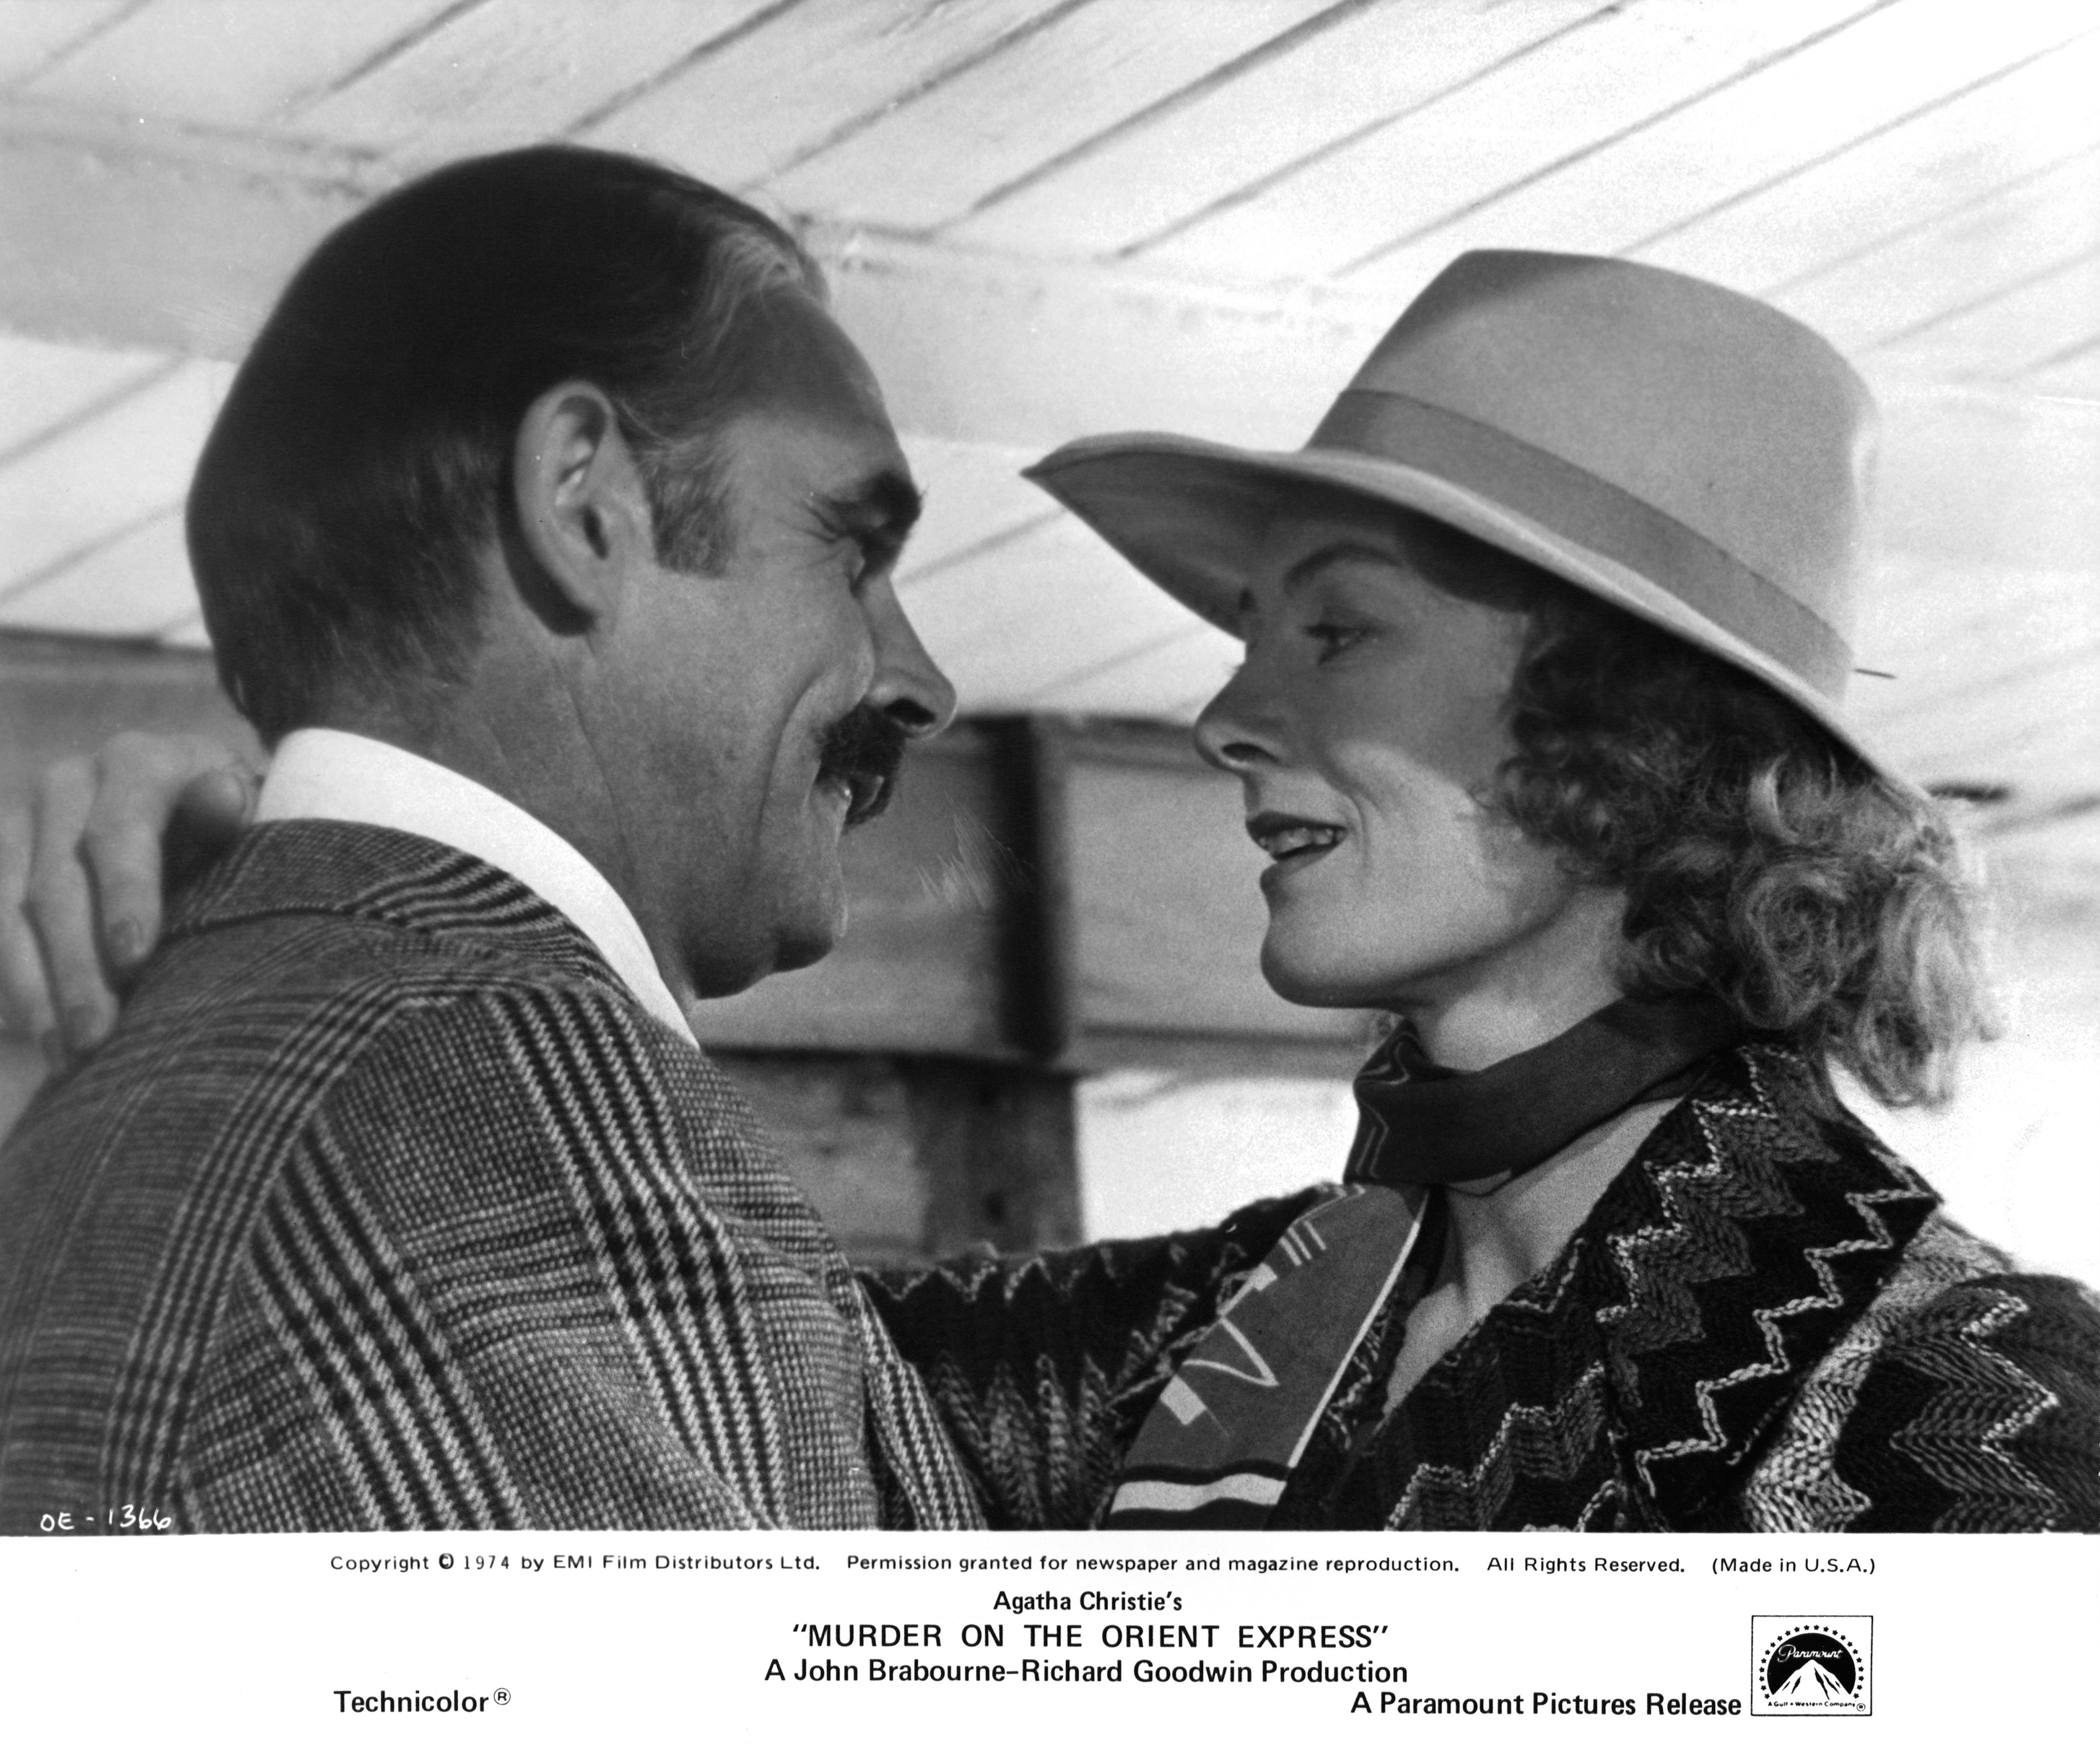 Sean Connery and Vanessa Redgrave in Murder on the Orient Express (1974)